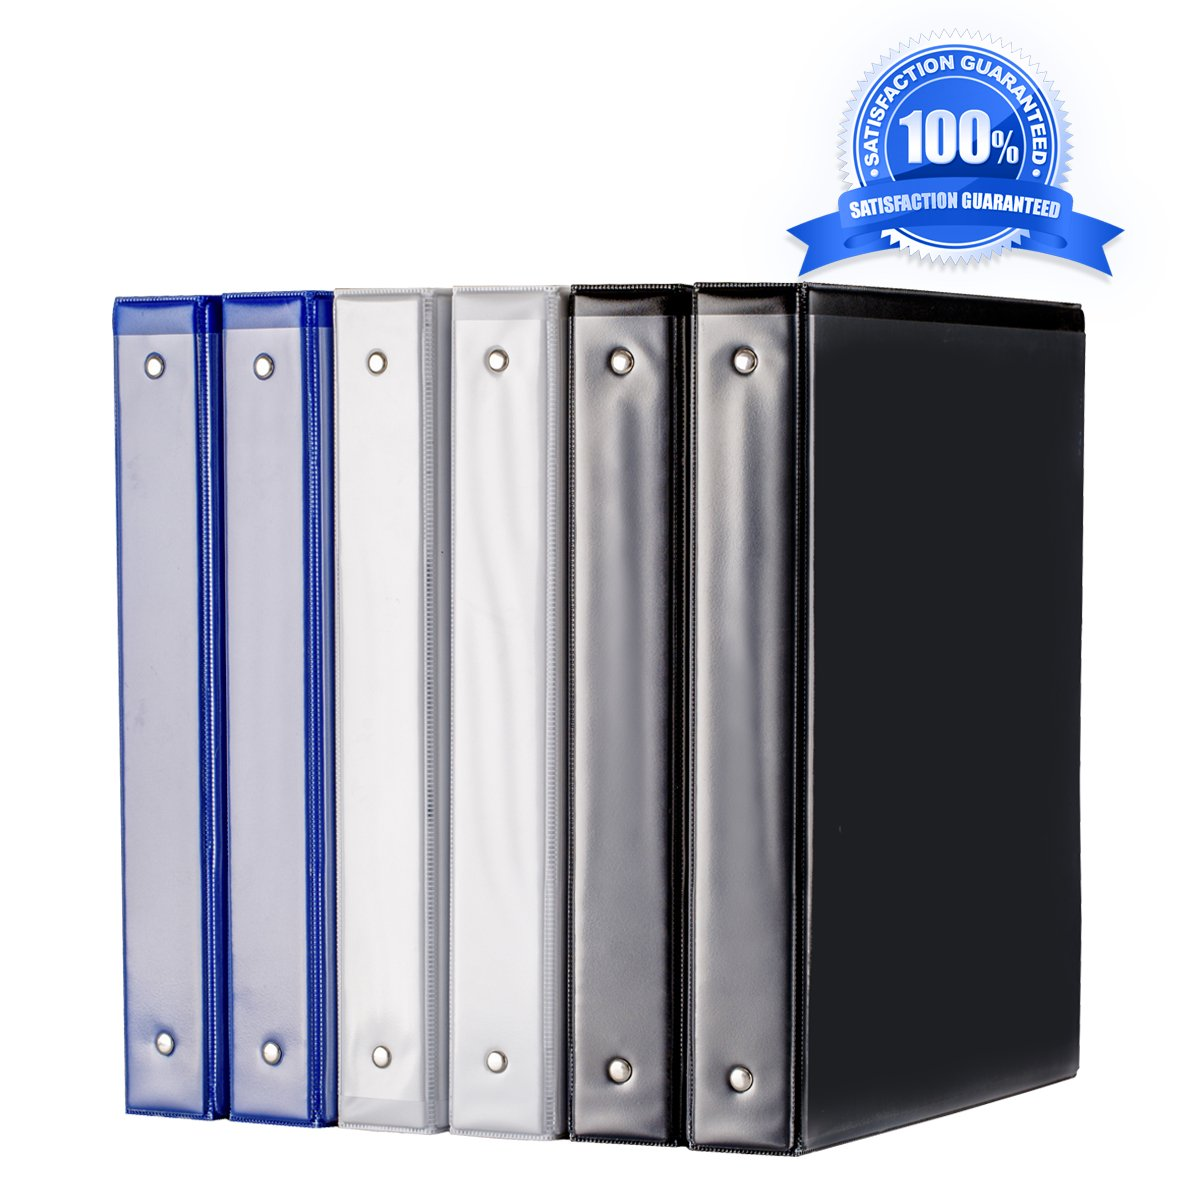 Binder, 1 inch Binders 3 Ring, Durable View Binder, Assorted color Binders(White/Black/Blue), 6pcs/pack